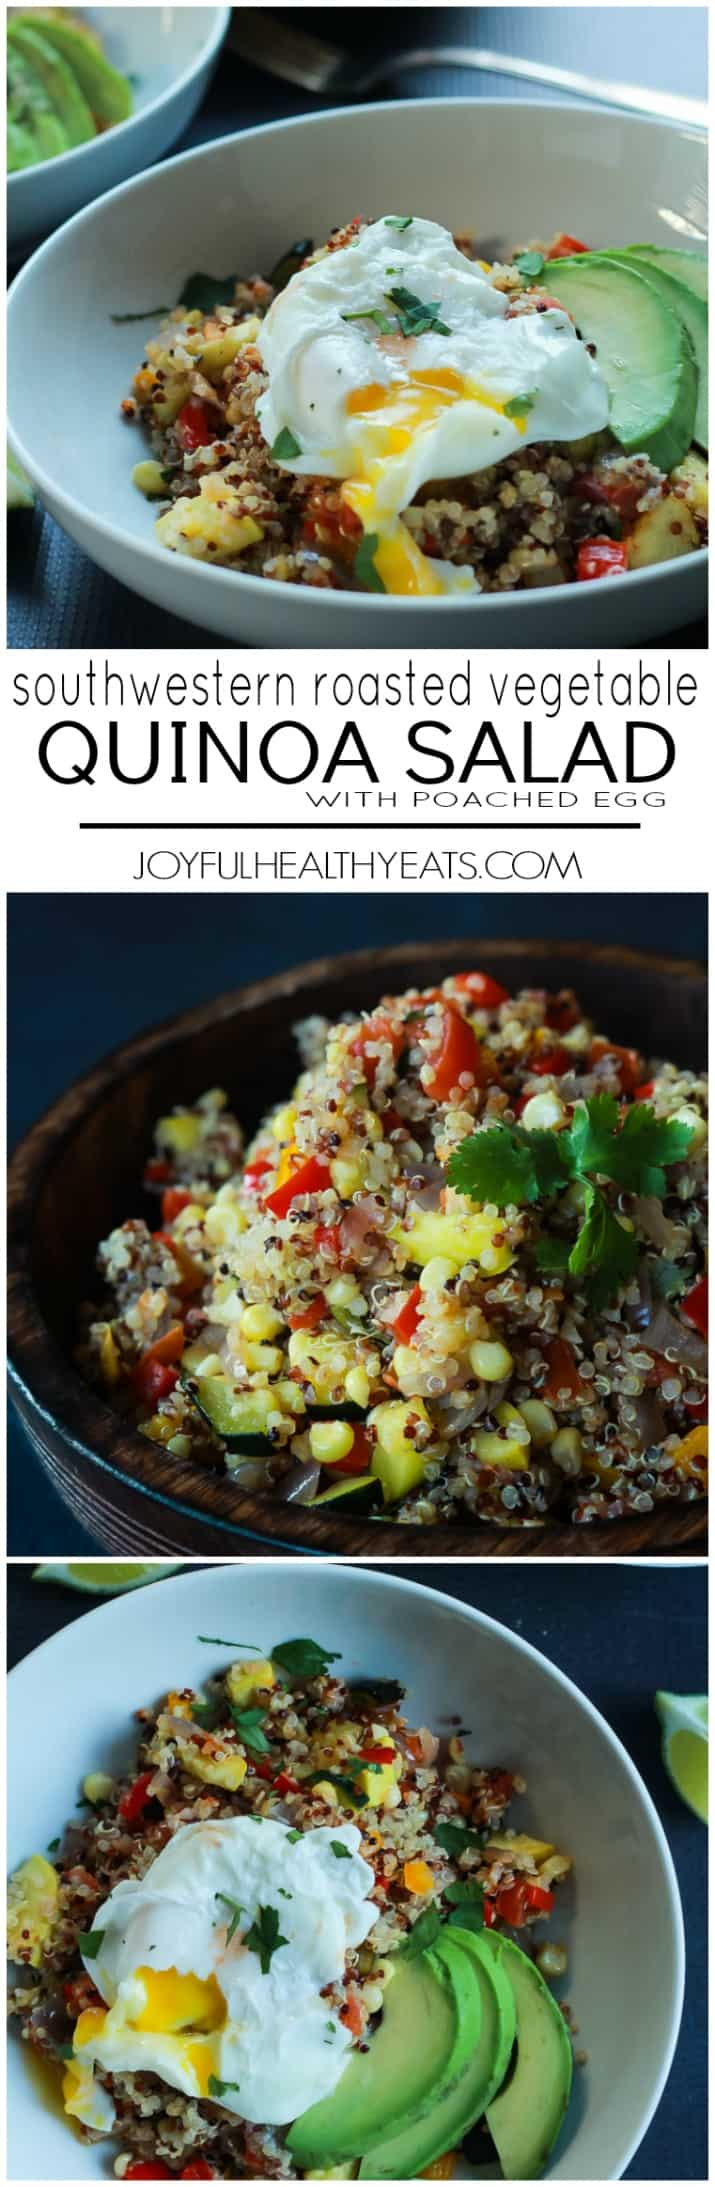 Healthy} Southwestern Roasted Vegetable Quinoa Salad with Poached Egg